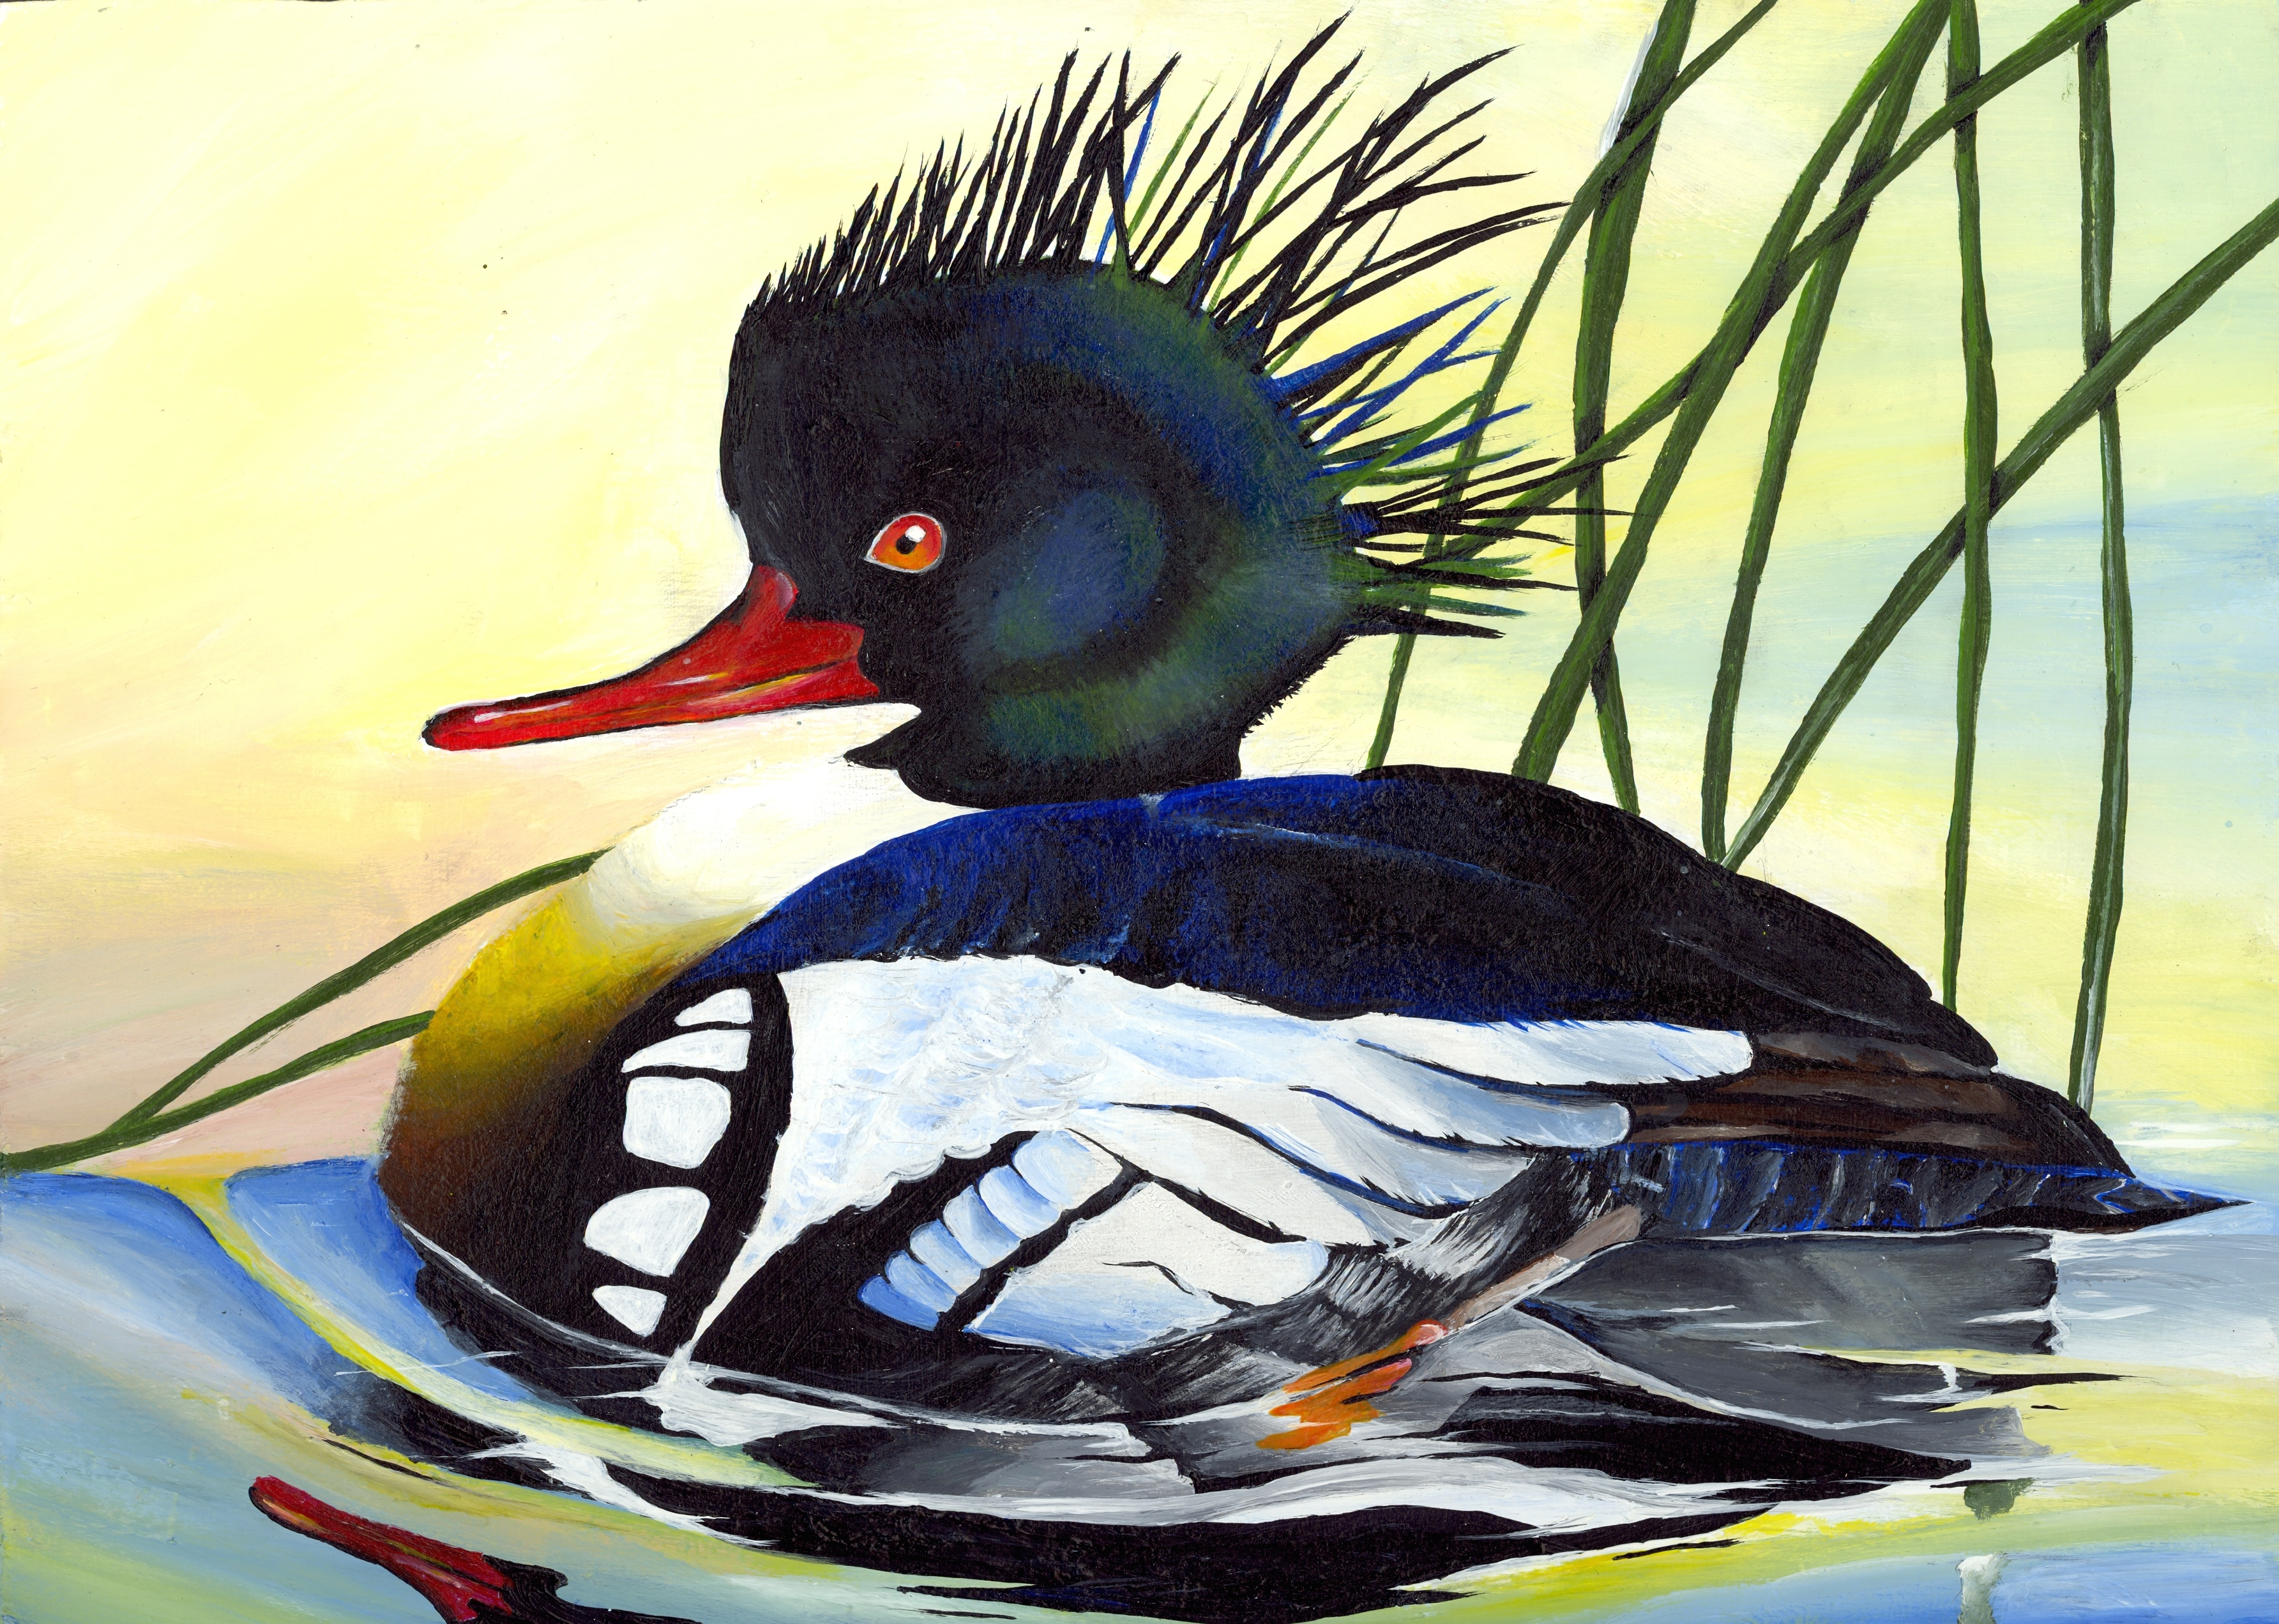 SPEARFISH Judges Spent Four Hours Sunday March 29th Viewing Hundreds Of Pieces Artwork To Find The South Dakota Junior Duck Stamp Contest Best